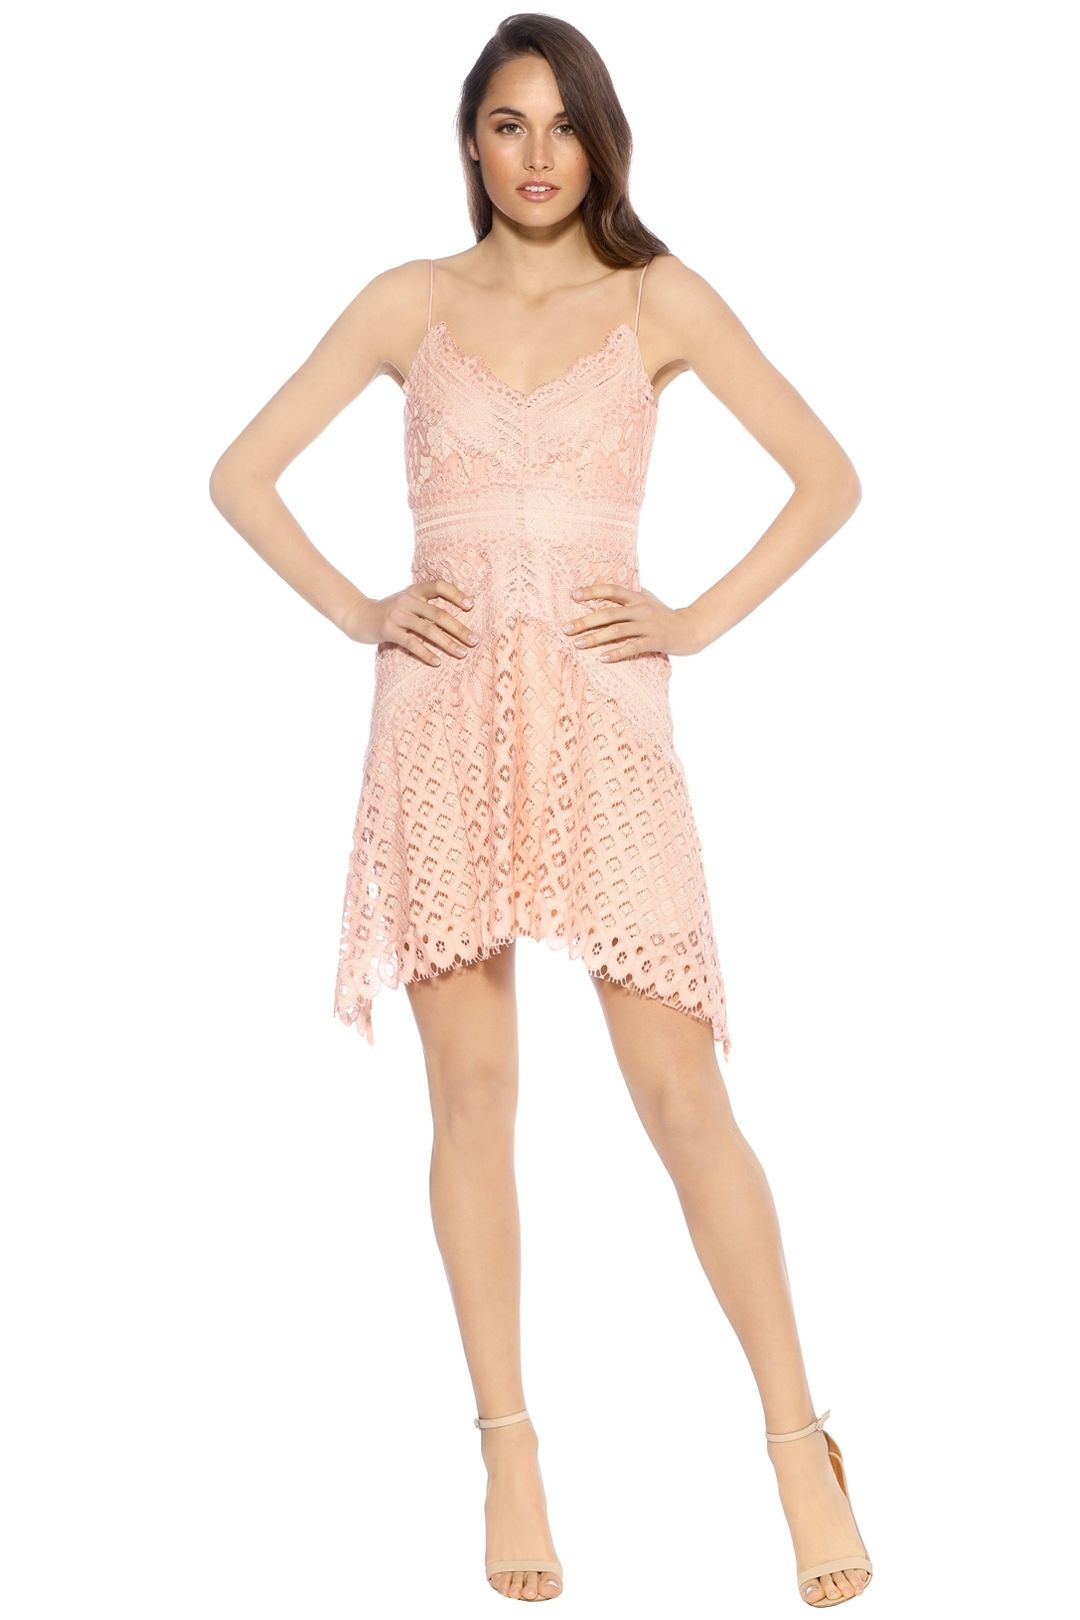 Keepsake The Label - Bridges Lace Mini Dress - Blush - Front